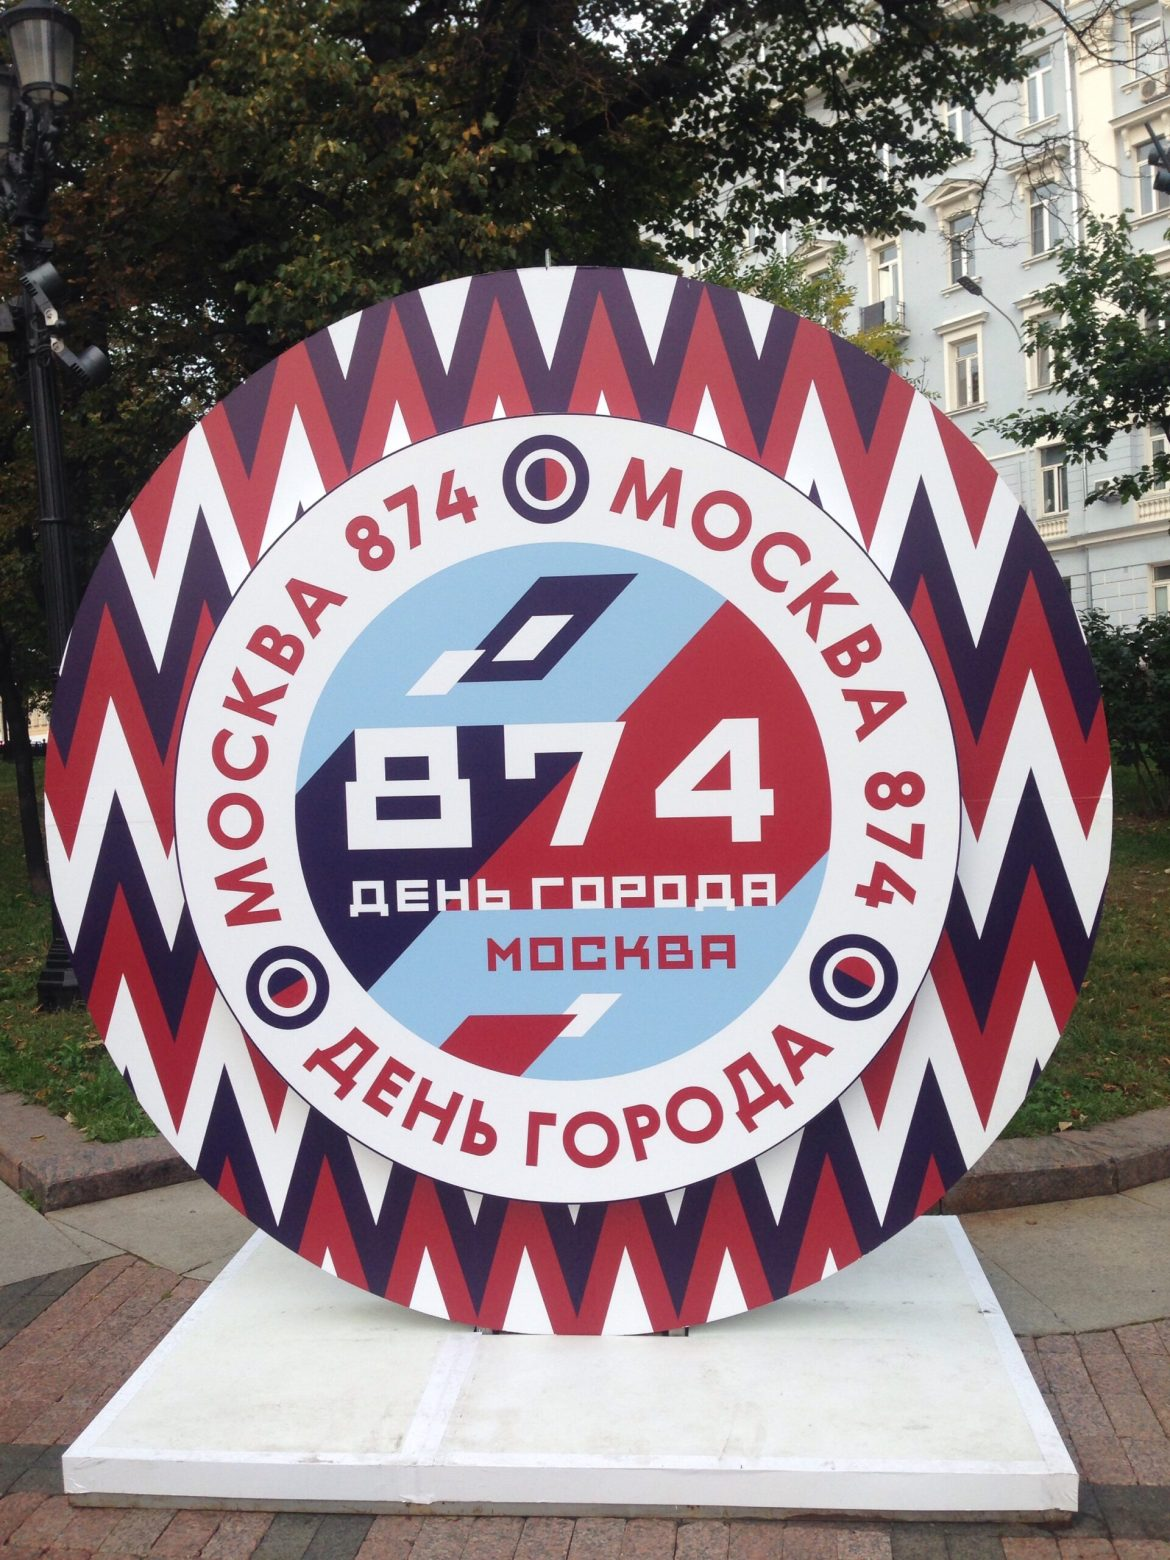 Notes on Moscow City Day